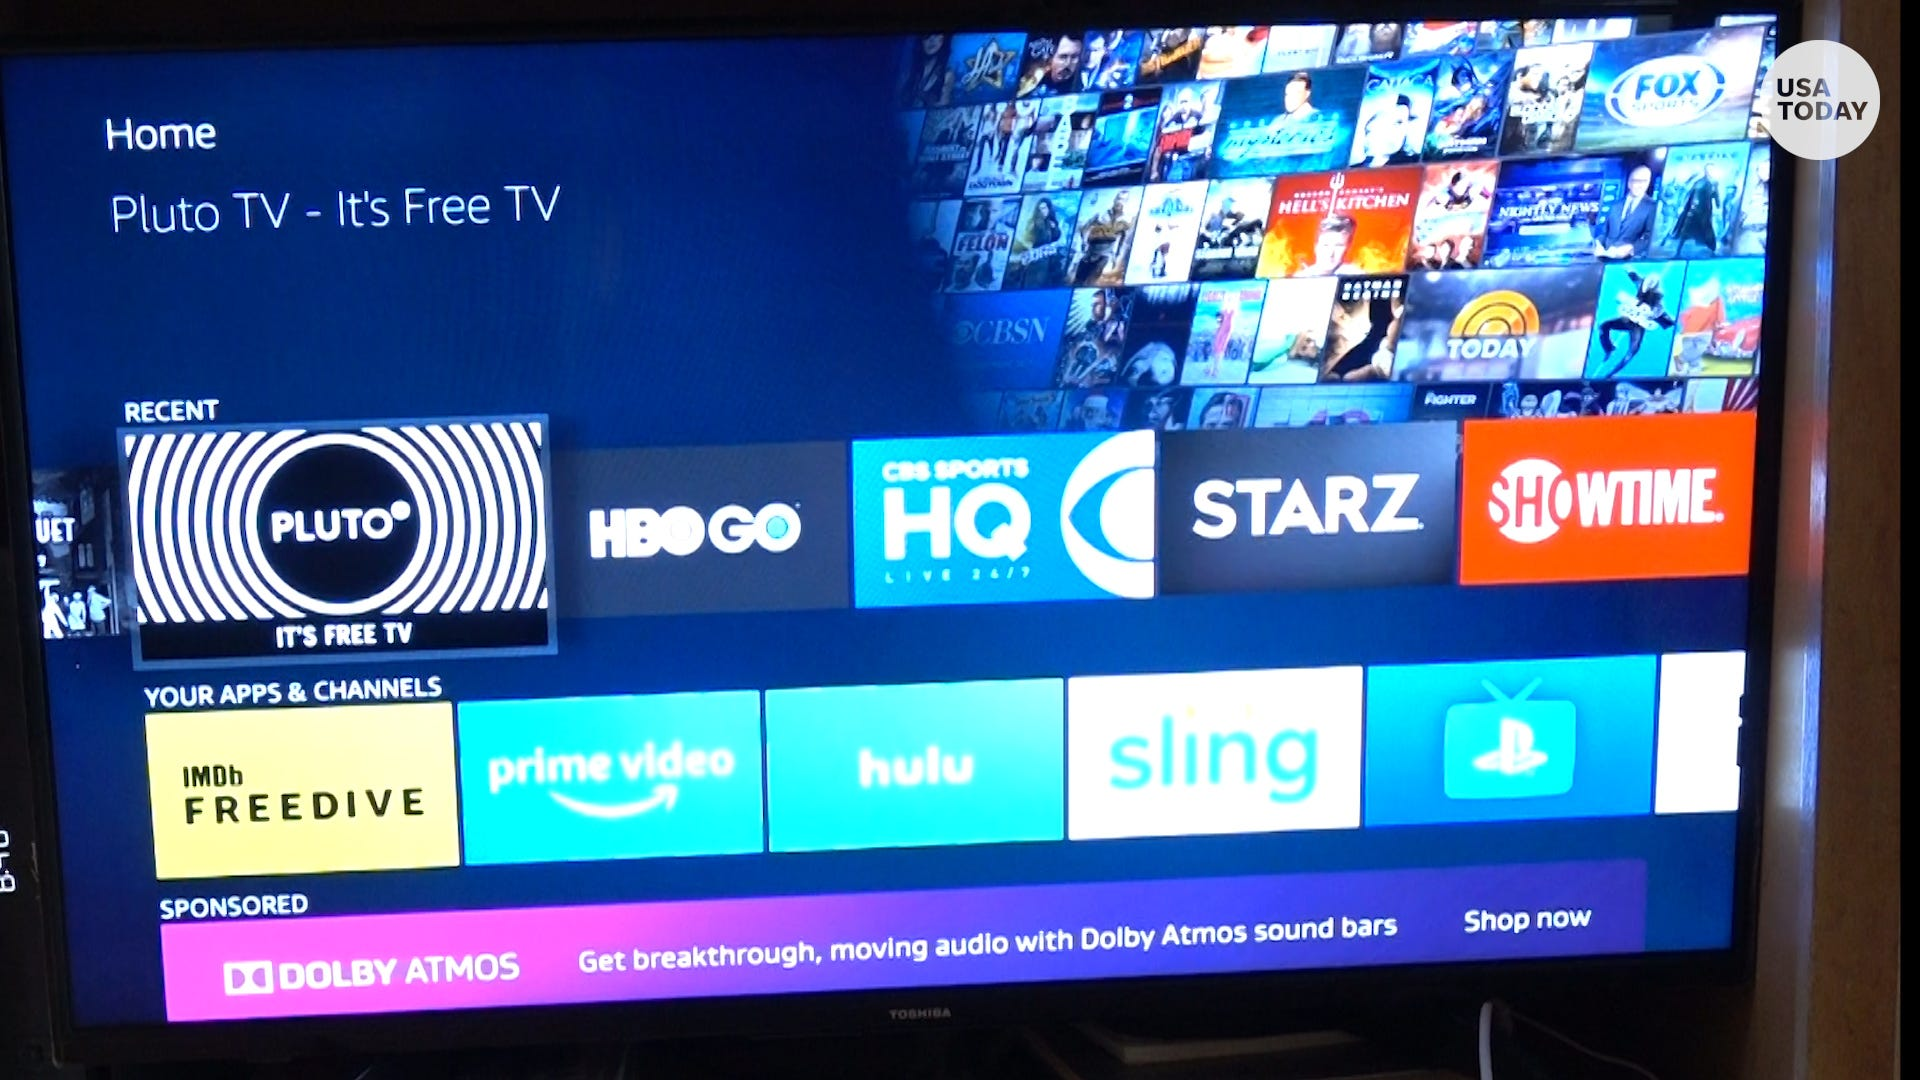 Here's how you can view free streaming TV